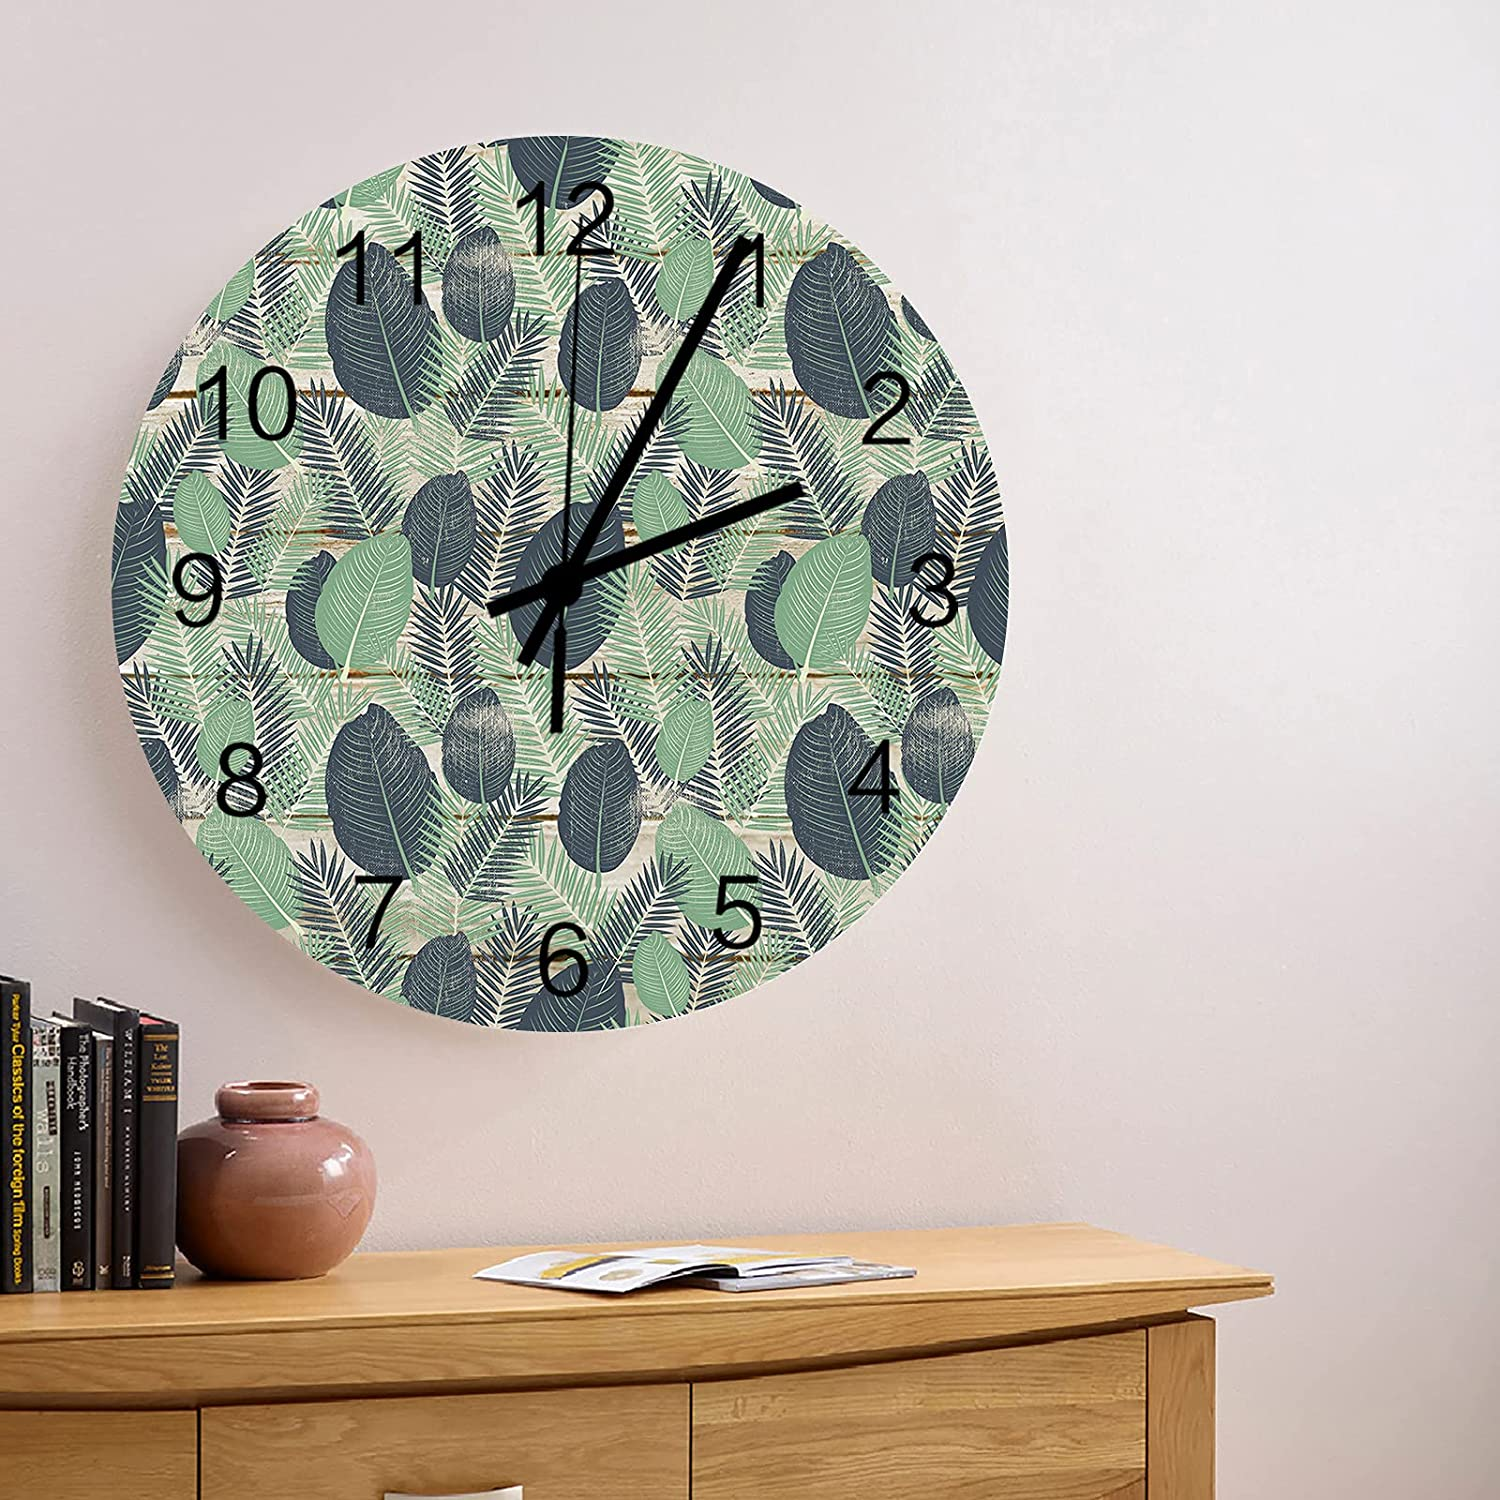 Ranking TOP20 12 Inch Silent Non-Ticking Wall Save money Sunmmer Clock Green Tropic Leave